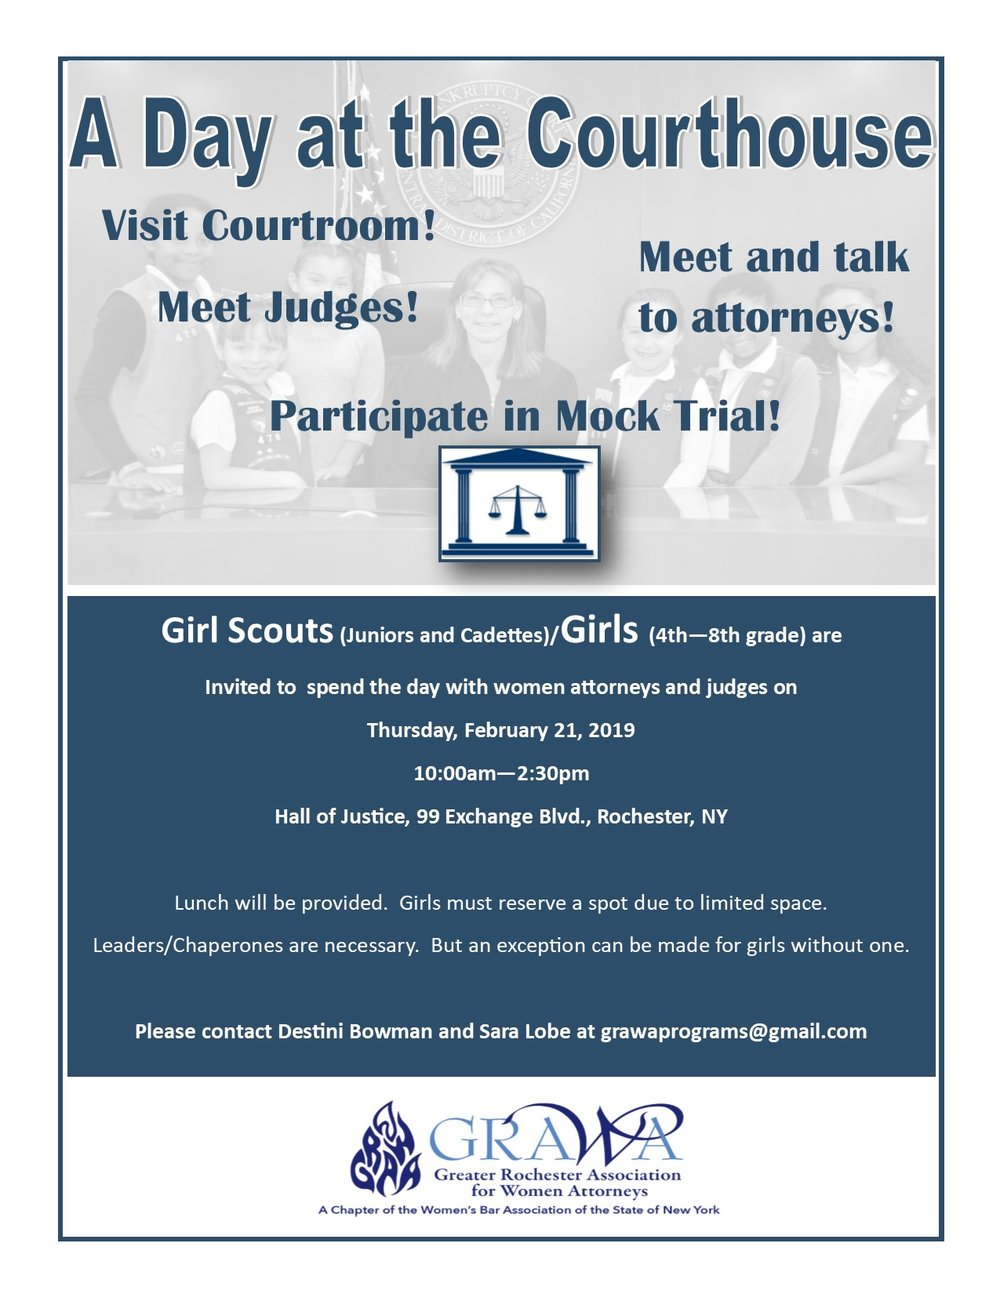 GRAWA Courthouse Flyer (2).jpg